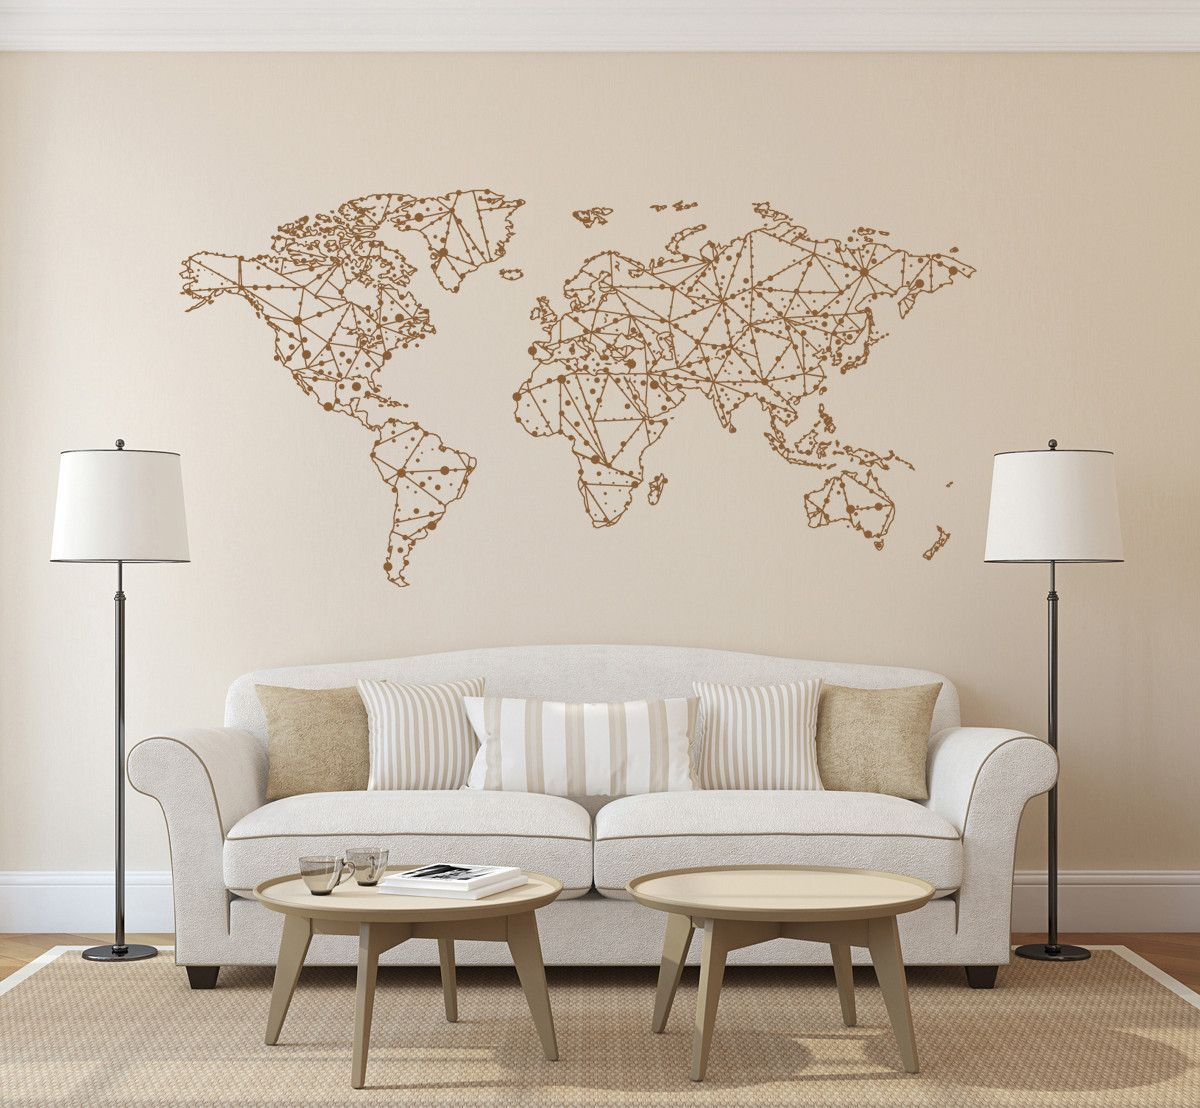 Ik1344 wall decal sticker world map bedroom living room map ik1344 wall decal sticker world map bedroom living room gumiabroncs Image collections